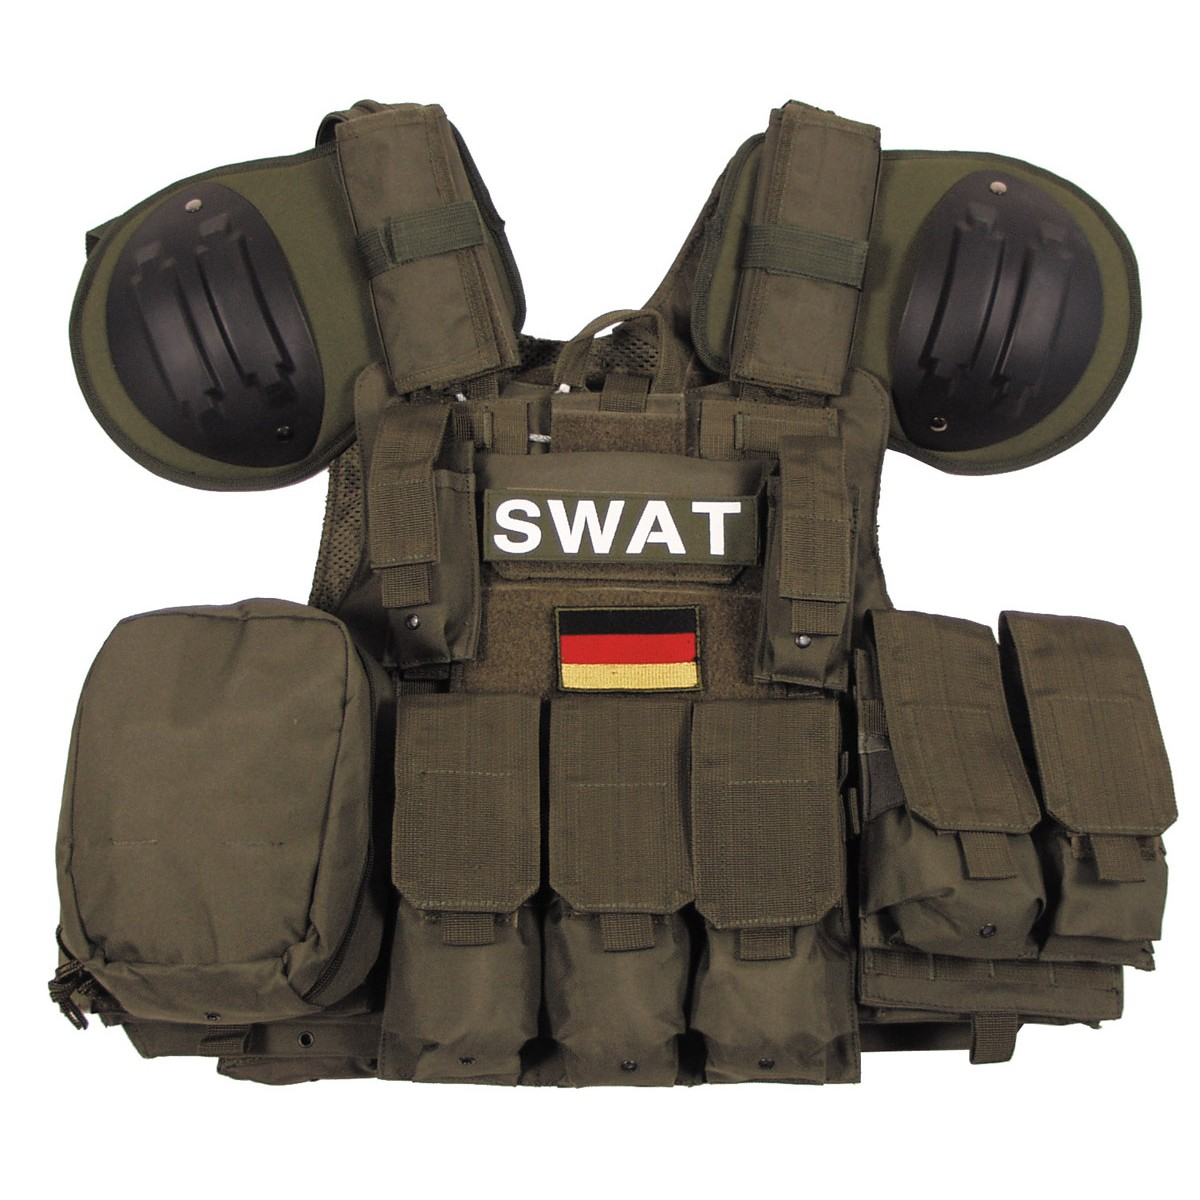 SWAT Tactical Combat MODULAR Vest w/ Bags&Pouches Quick Remove - OD Green